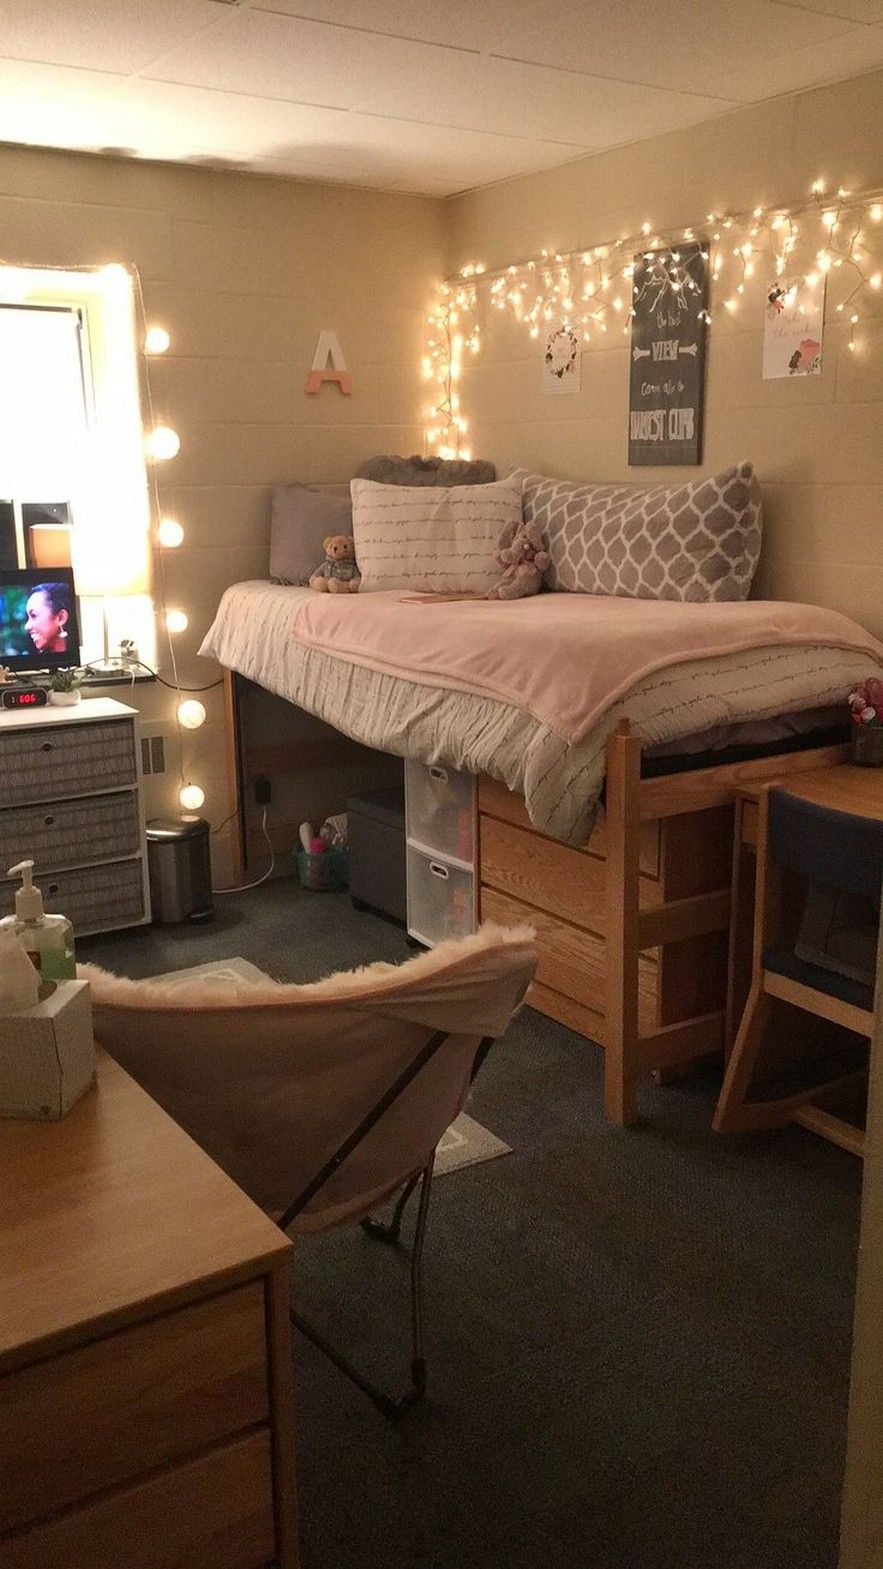 Small Dorm Room Ideas: 70 Small Bedroom Ideas That Are Made Space Saving 1 In